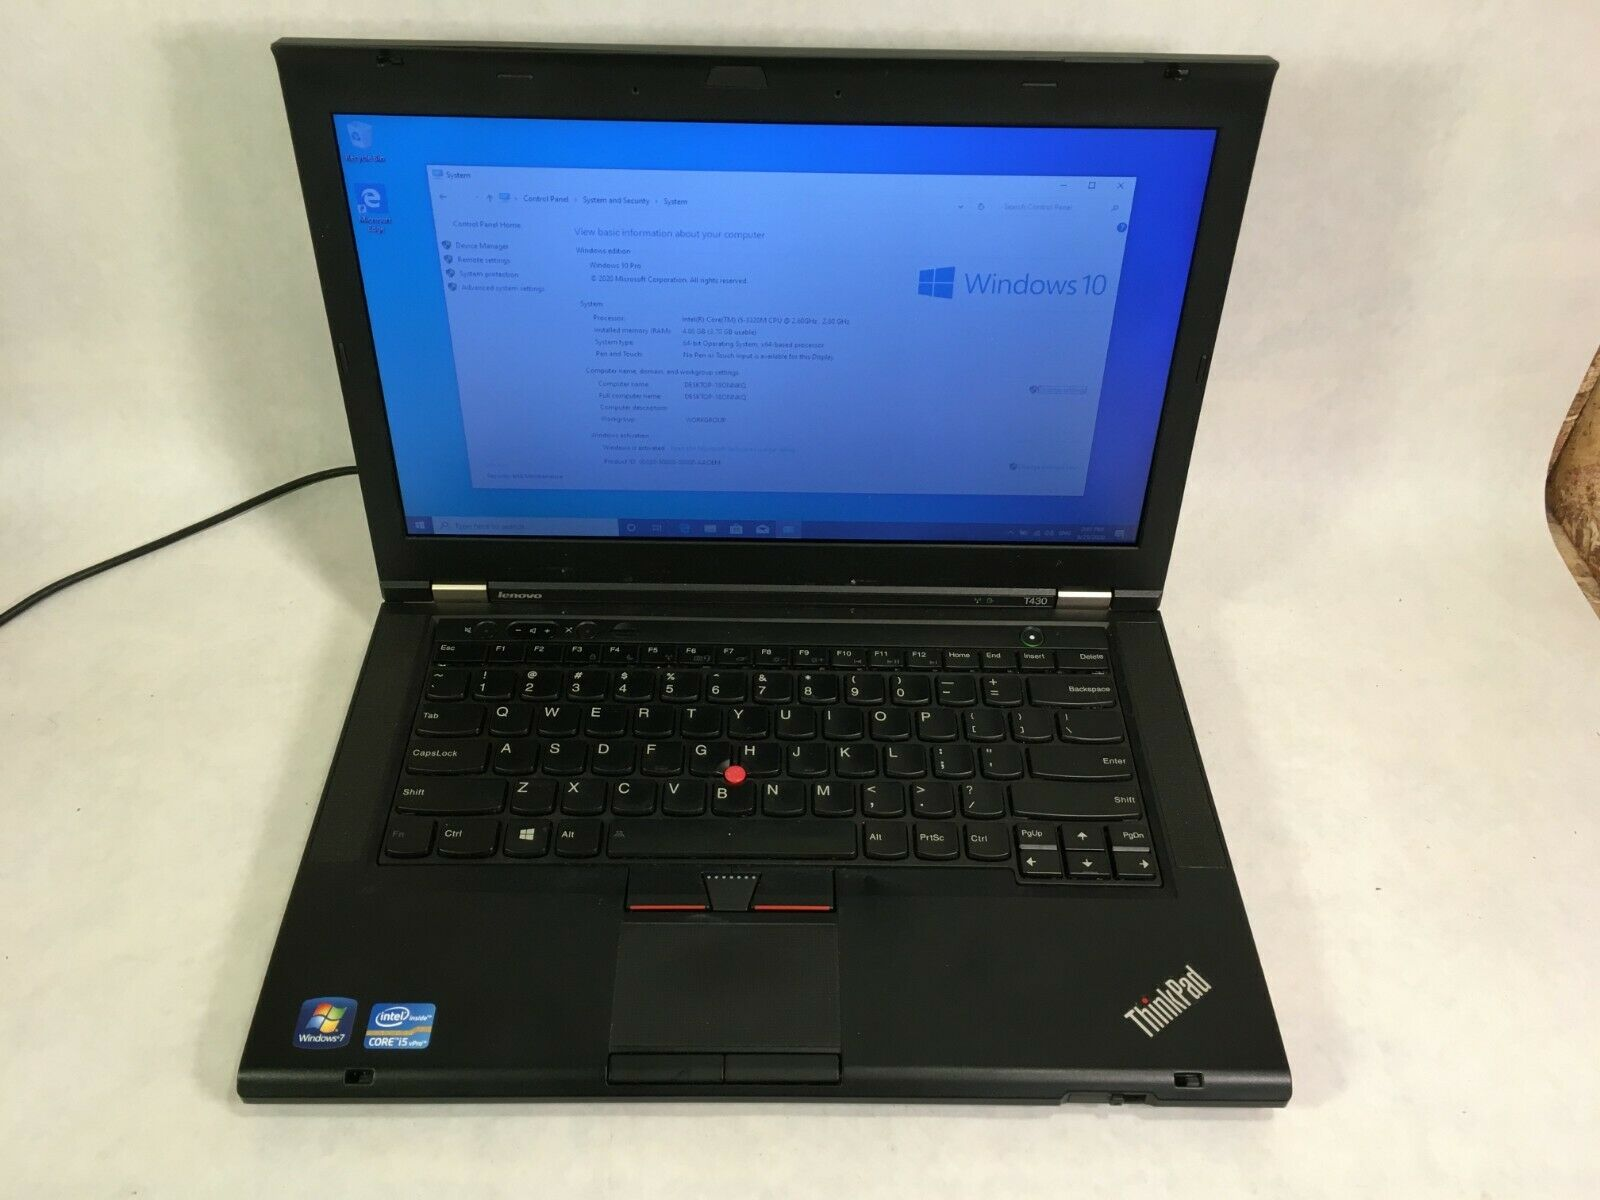 "Laptop Windows - Lenovo ThinkPad T430 14"" Laptop Intel Core i5 2.6GHz 4GB 250GB Windows 10"